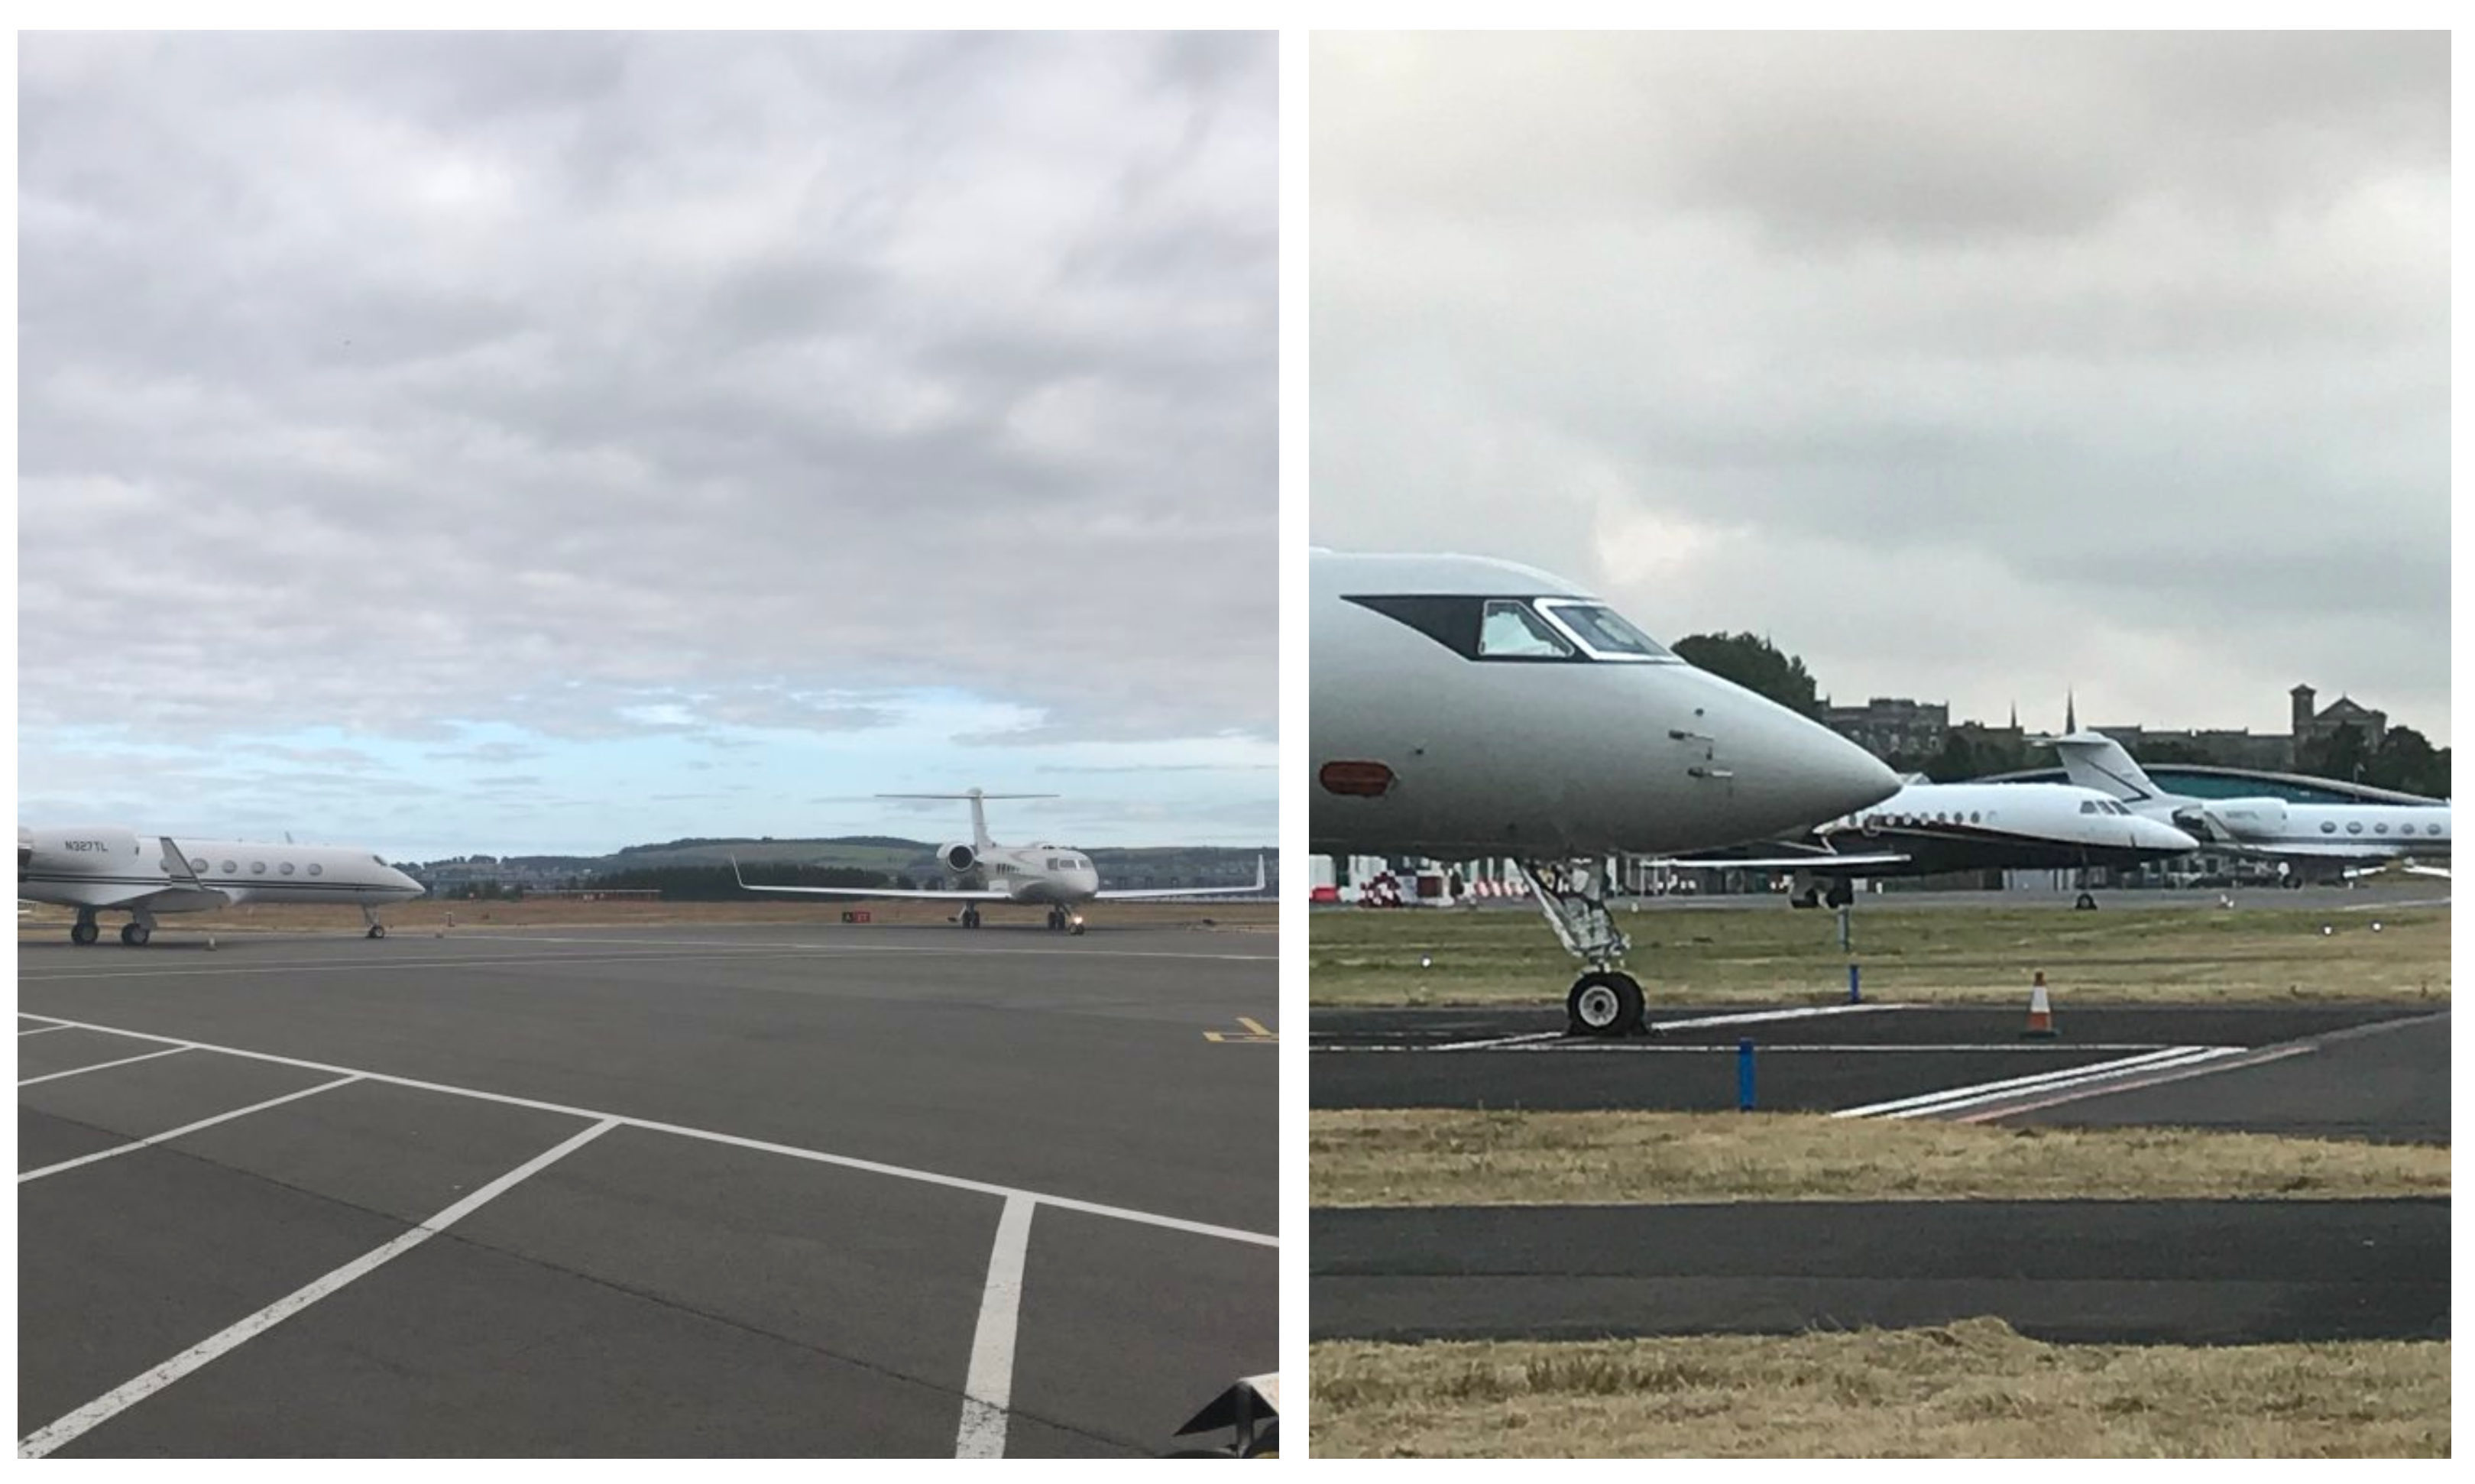 Some of the arrivals at Dundee Airport.